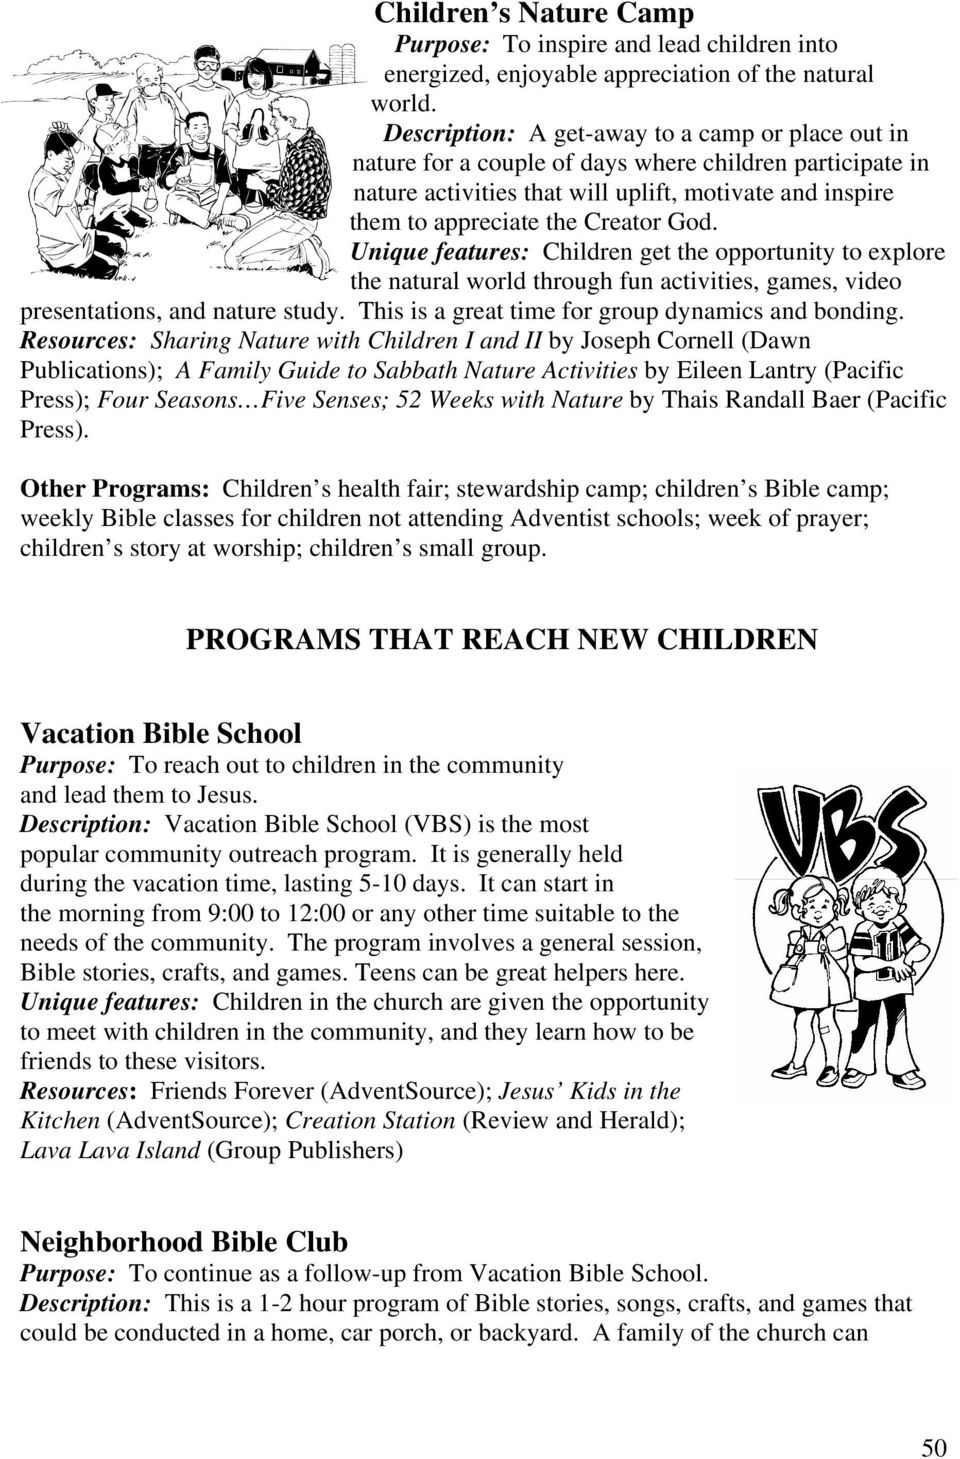 Chapter 13 PROGRAMS THAT REACH CHILDREN WITHIN THE CHURCH - PDF